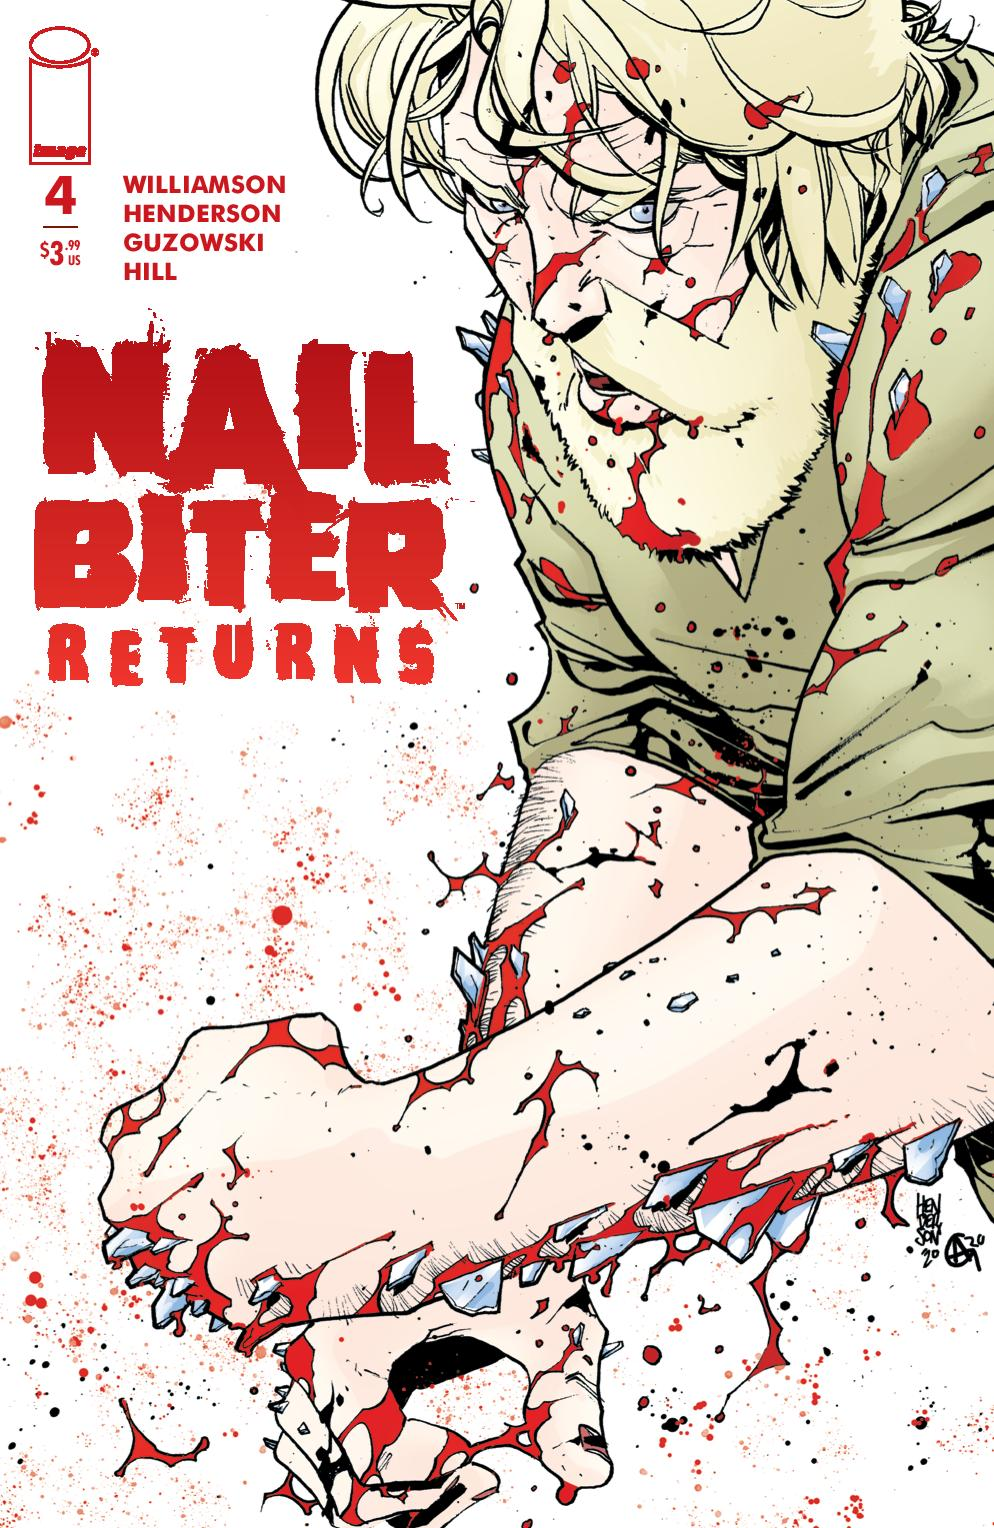 'Nailbiter Returns' #4 review